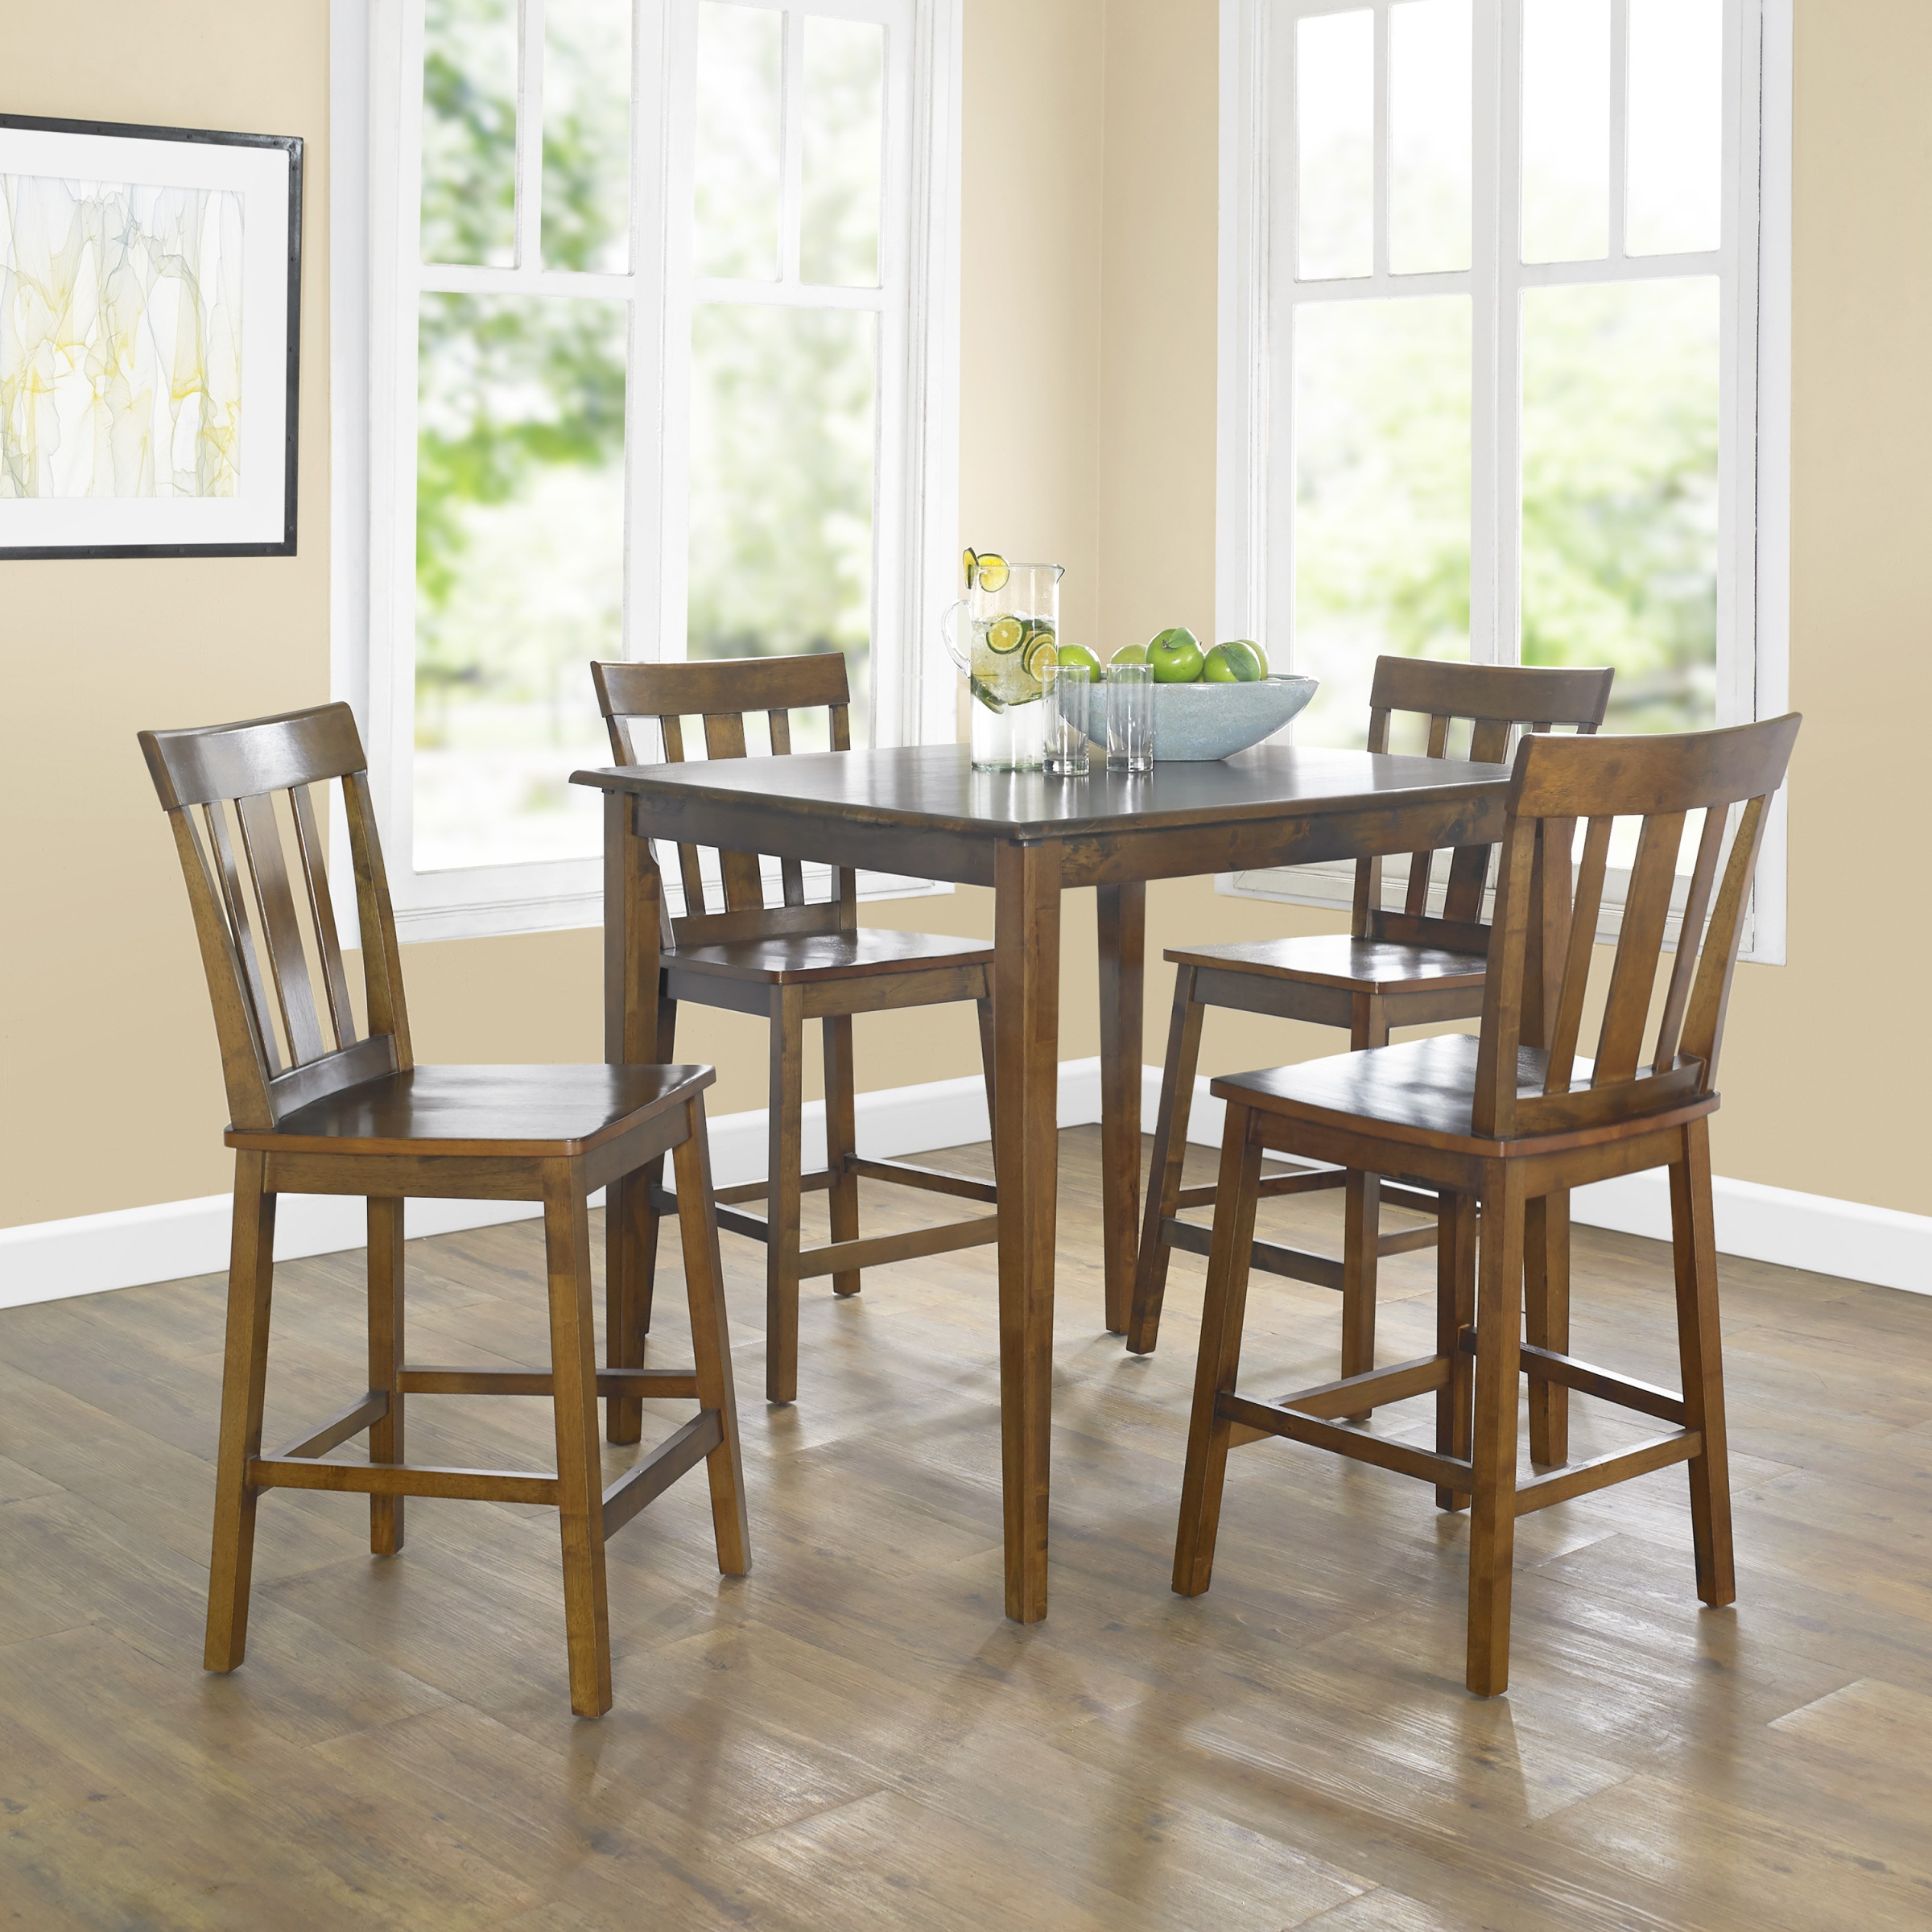 Mainstays 5 Piece Mission Counter Height Dining Set – Walmart With Best And Newest Cargo 5 Piece Dining Sets (View 14 of 20)